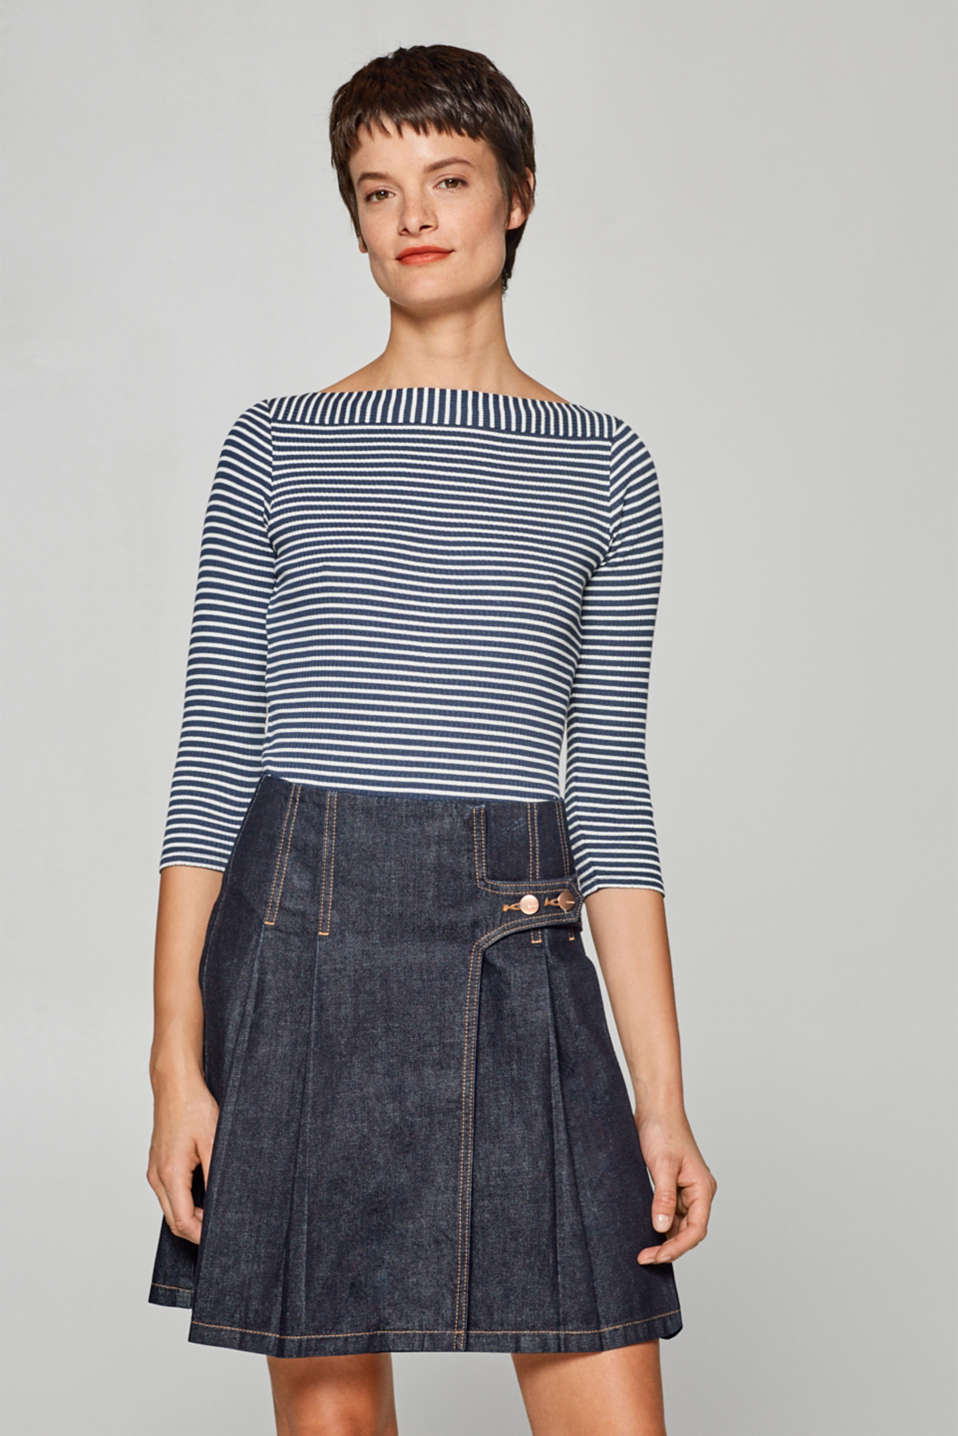 Esprit - Striped, ribbed top with a bateau neckline